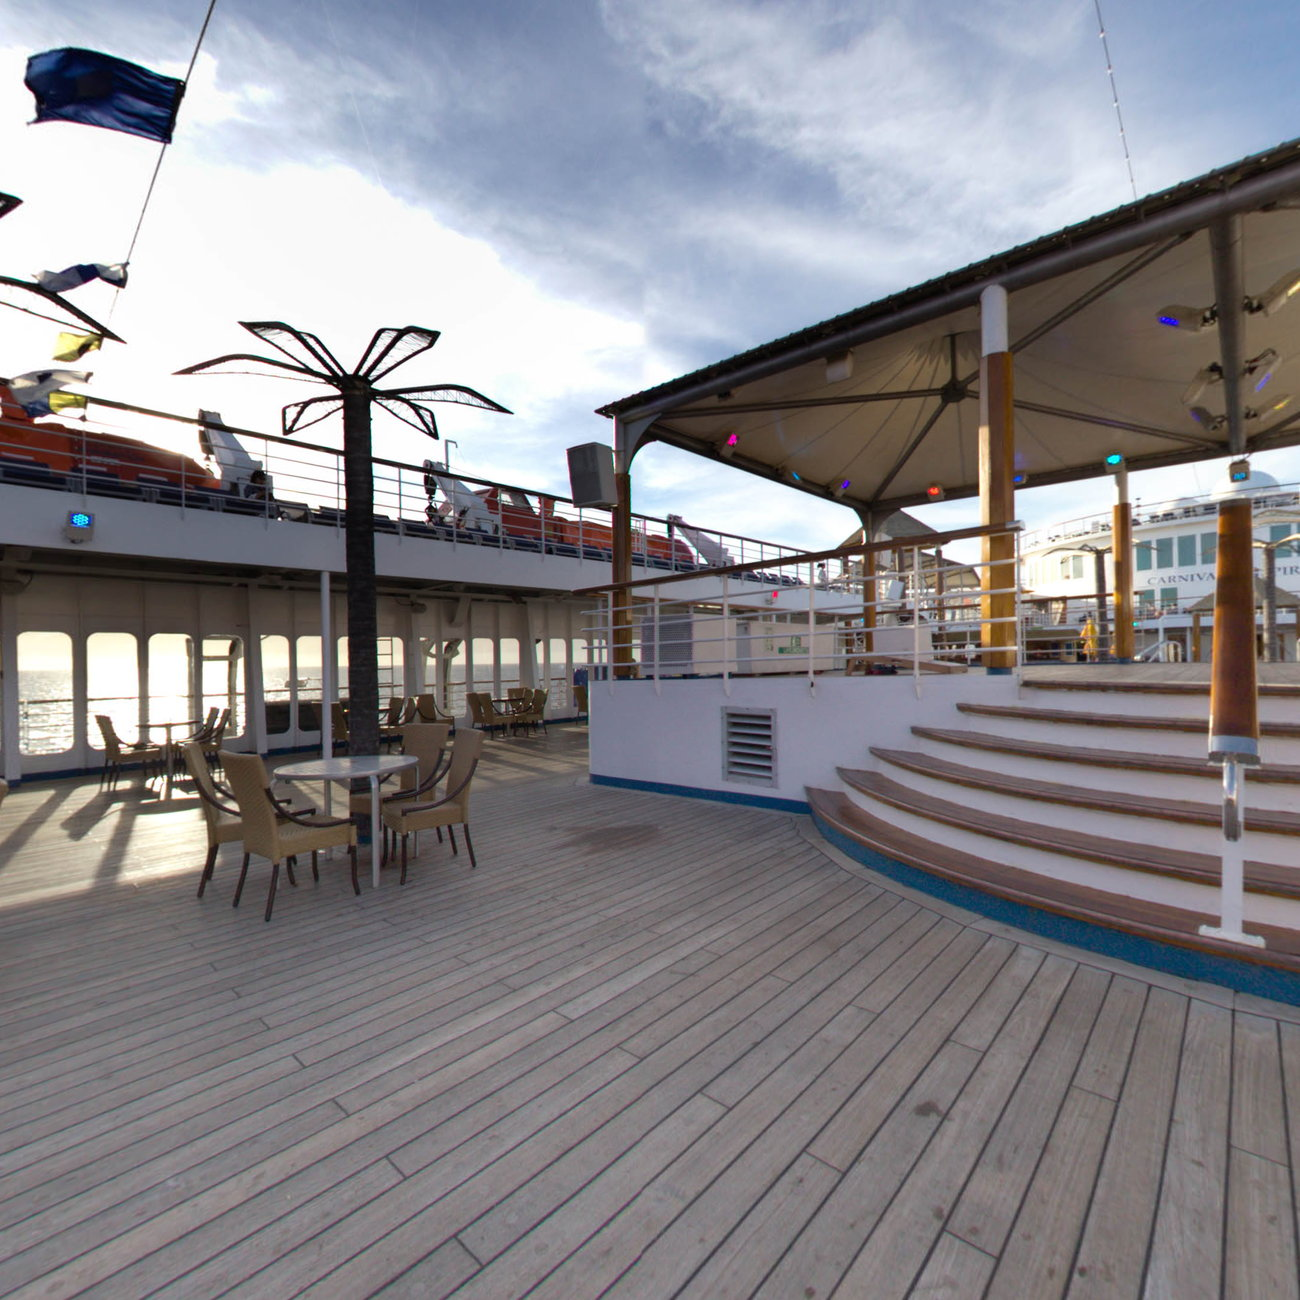 Panorama of Lido Deck Stage on Carnival Inspiration